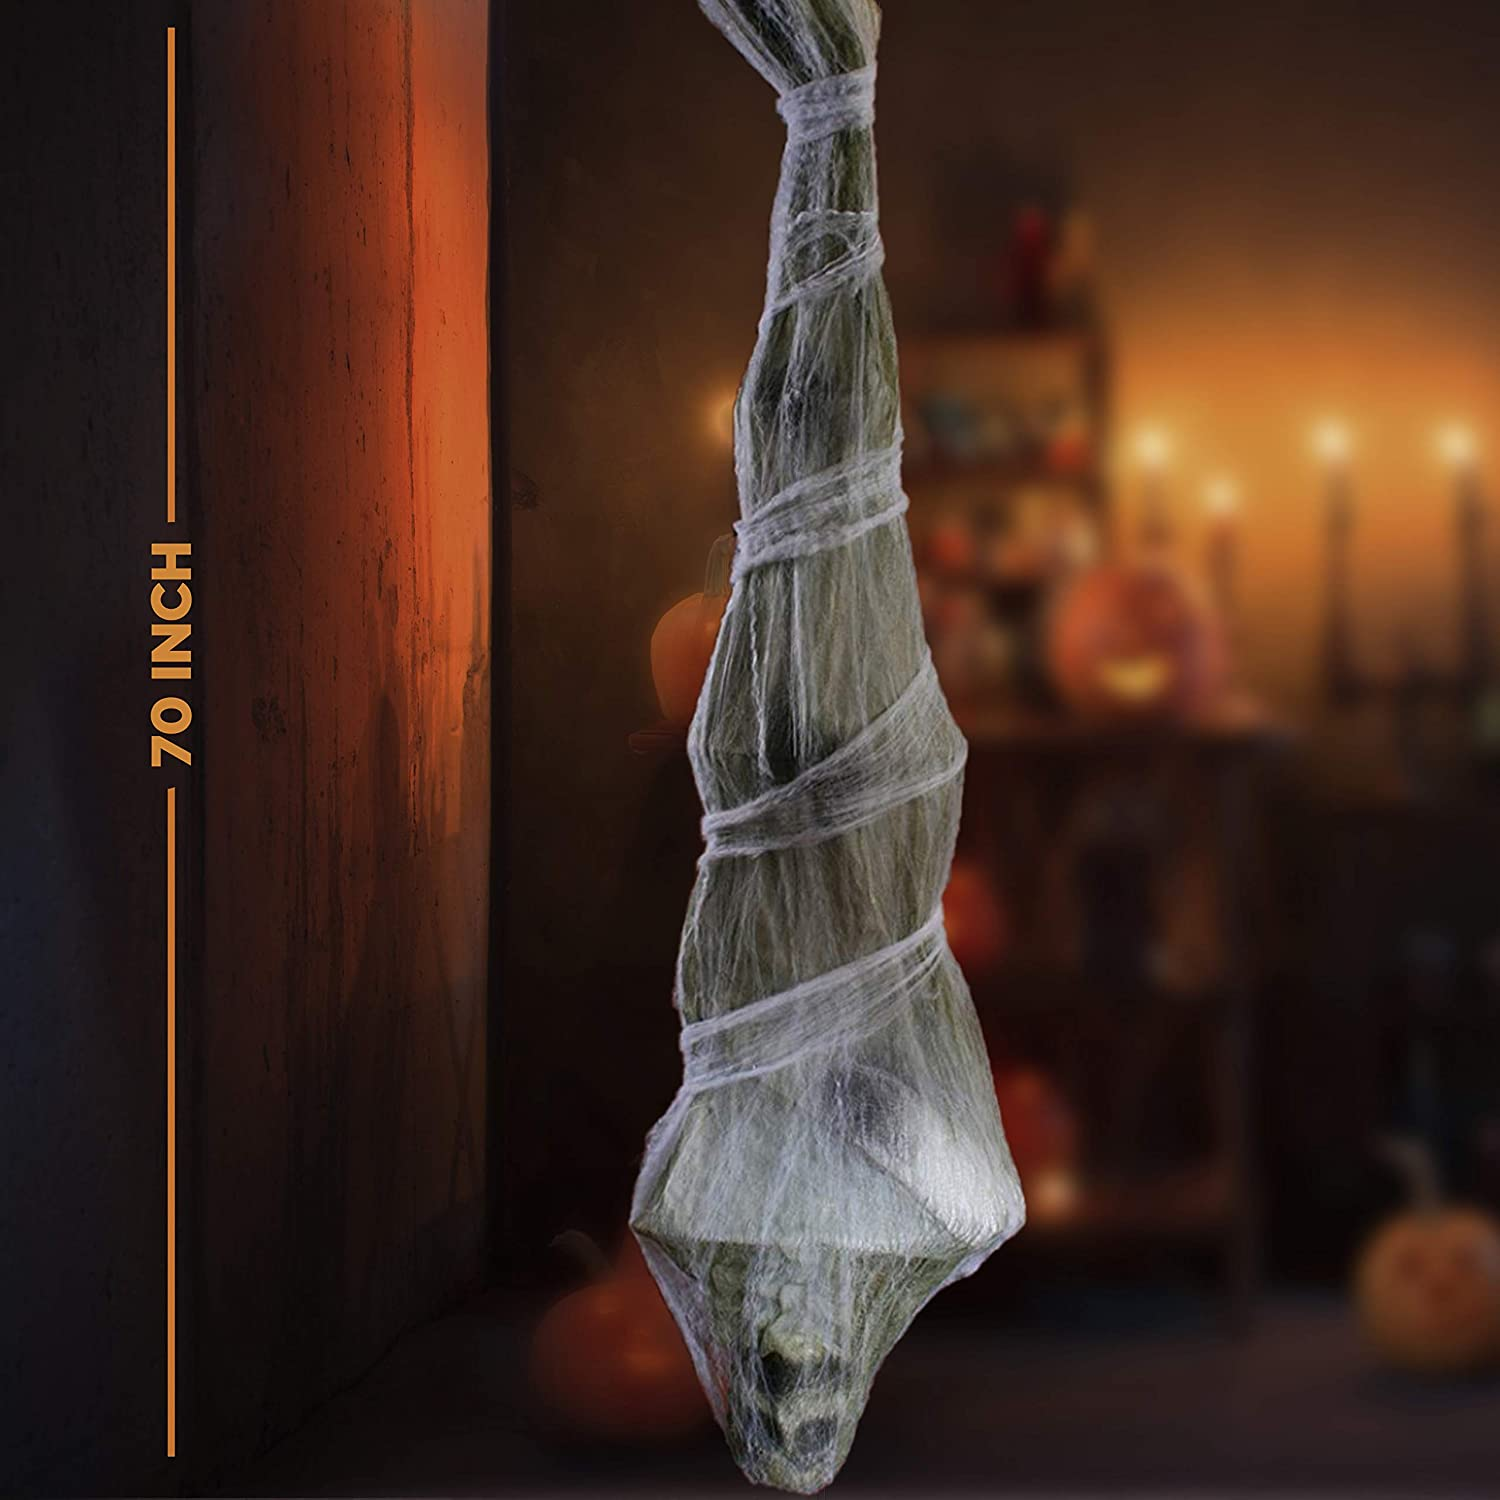 Prextex Halloween 70-Inch Hanging Cocoon Corpse for Halloween Outdoor Decorations - Large Dead Body Cocoon Corpse for Spooky Scary Halloween Decorations for Haunted House or Graveyeard Scene Display